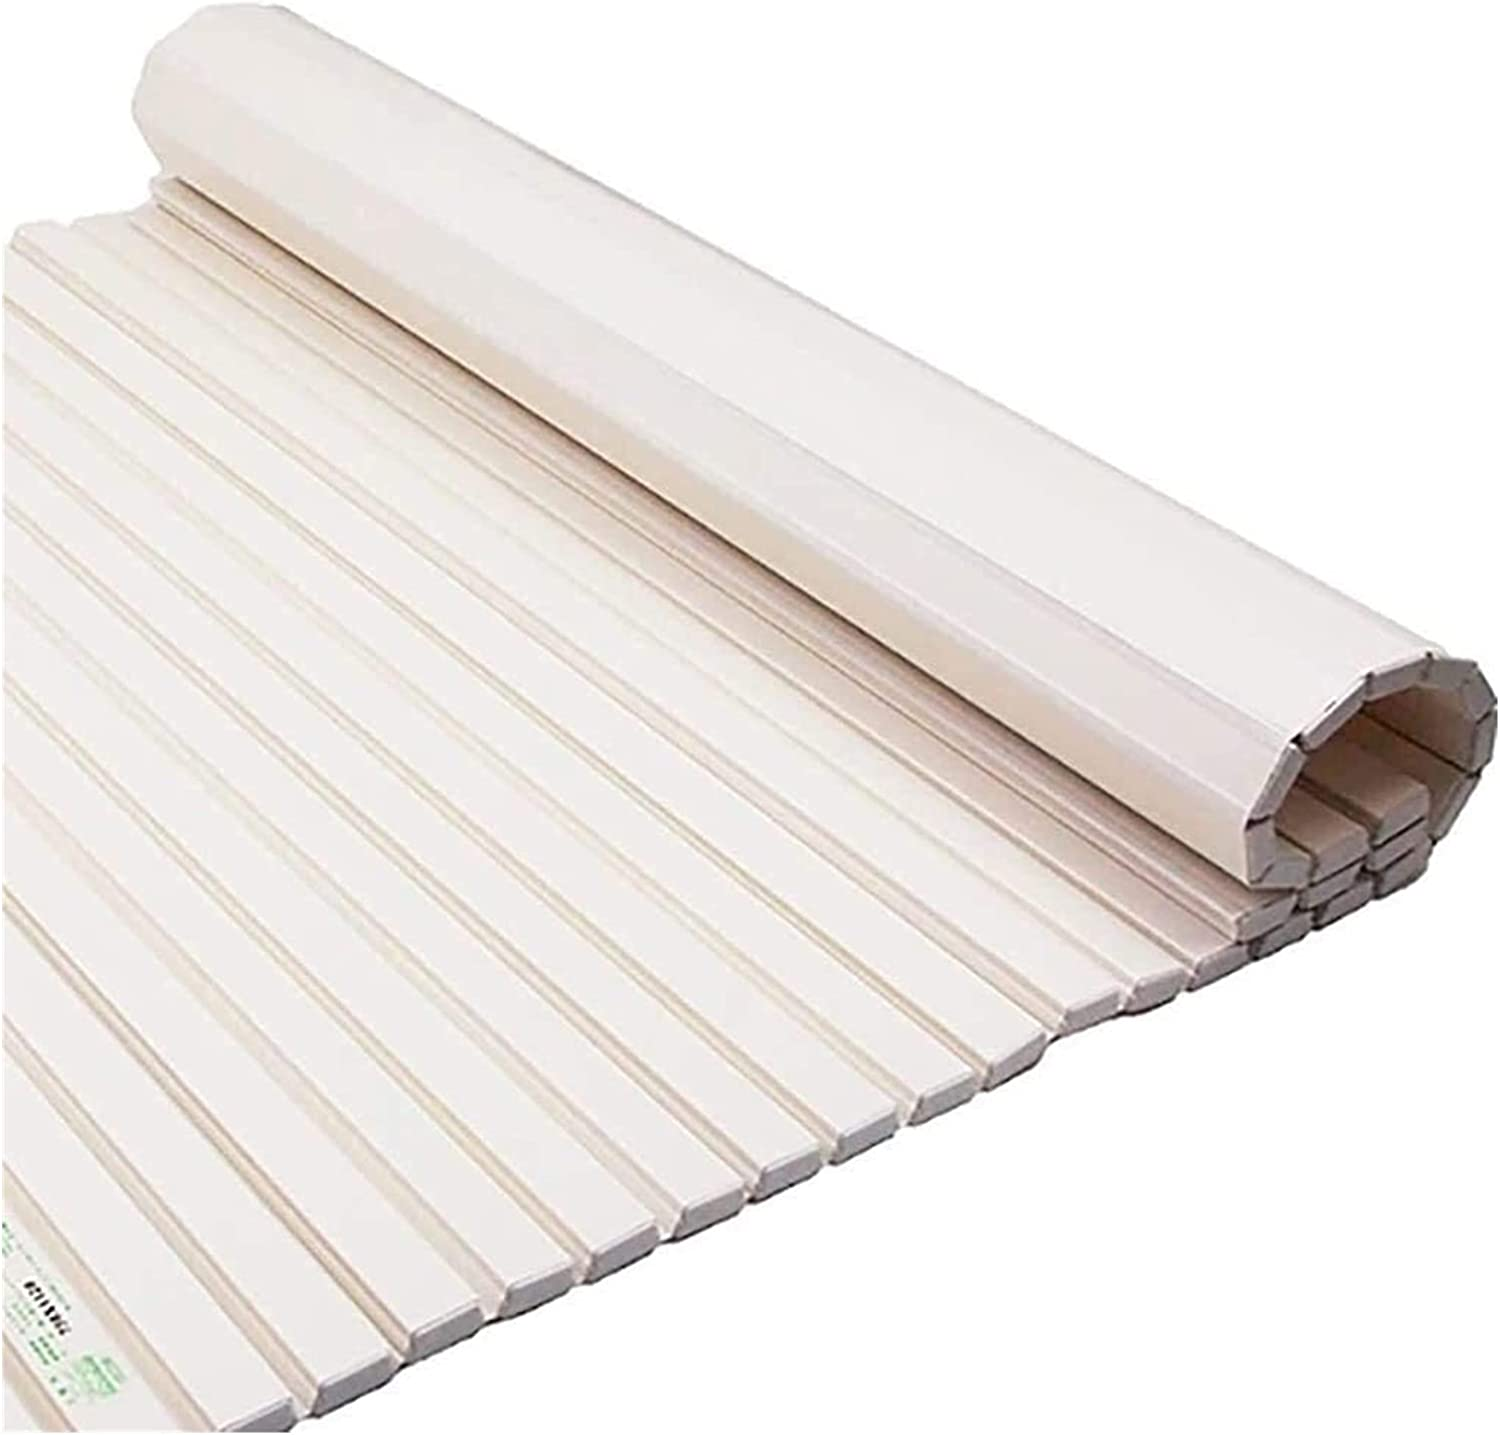 Lieber Lighting Bathtub Tulsa Mall Dustproof Cover Insulation We OFFer at cheap prices